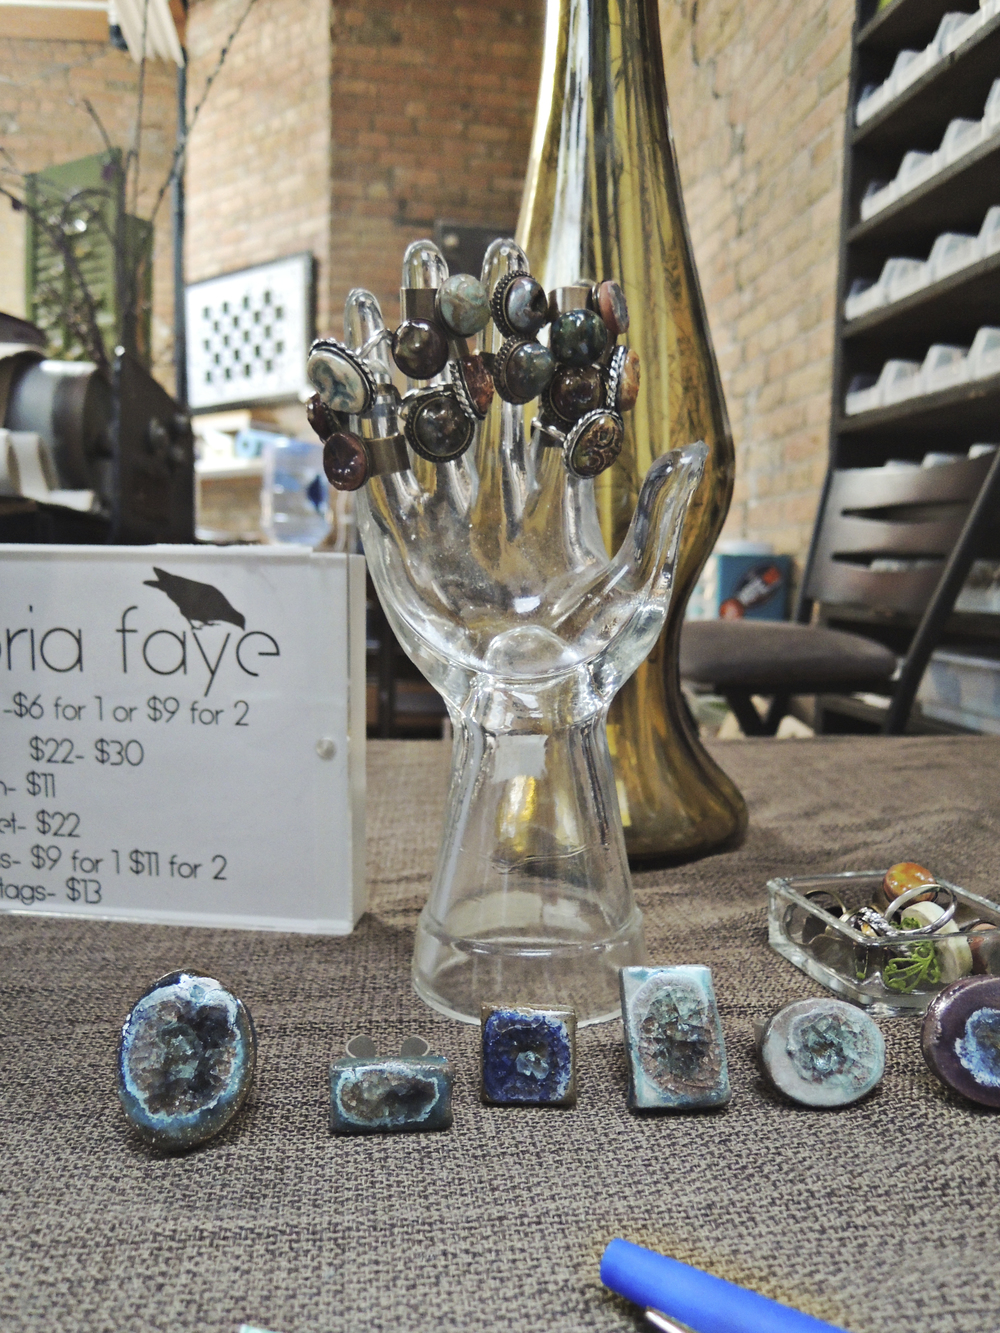 Did you know I make rings?! The rings in front are suppose to look like geodes when actually it's melted car glass.